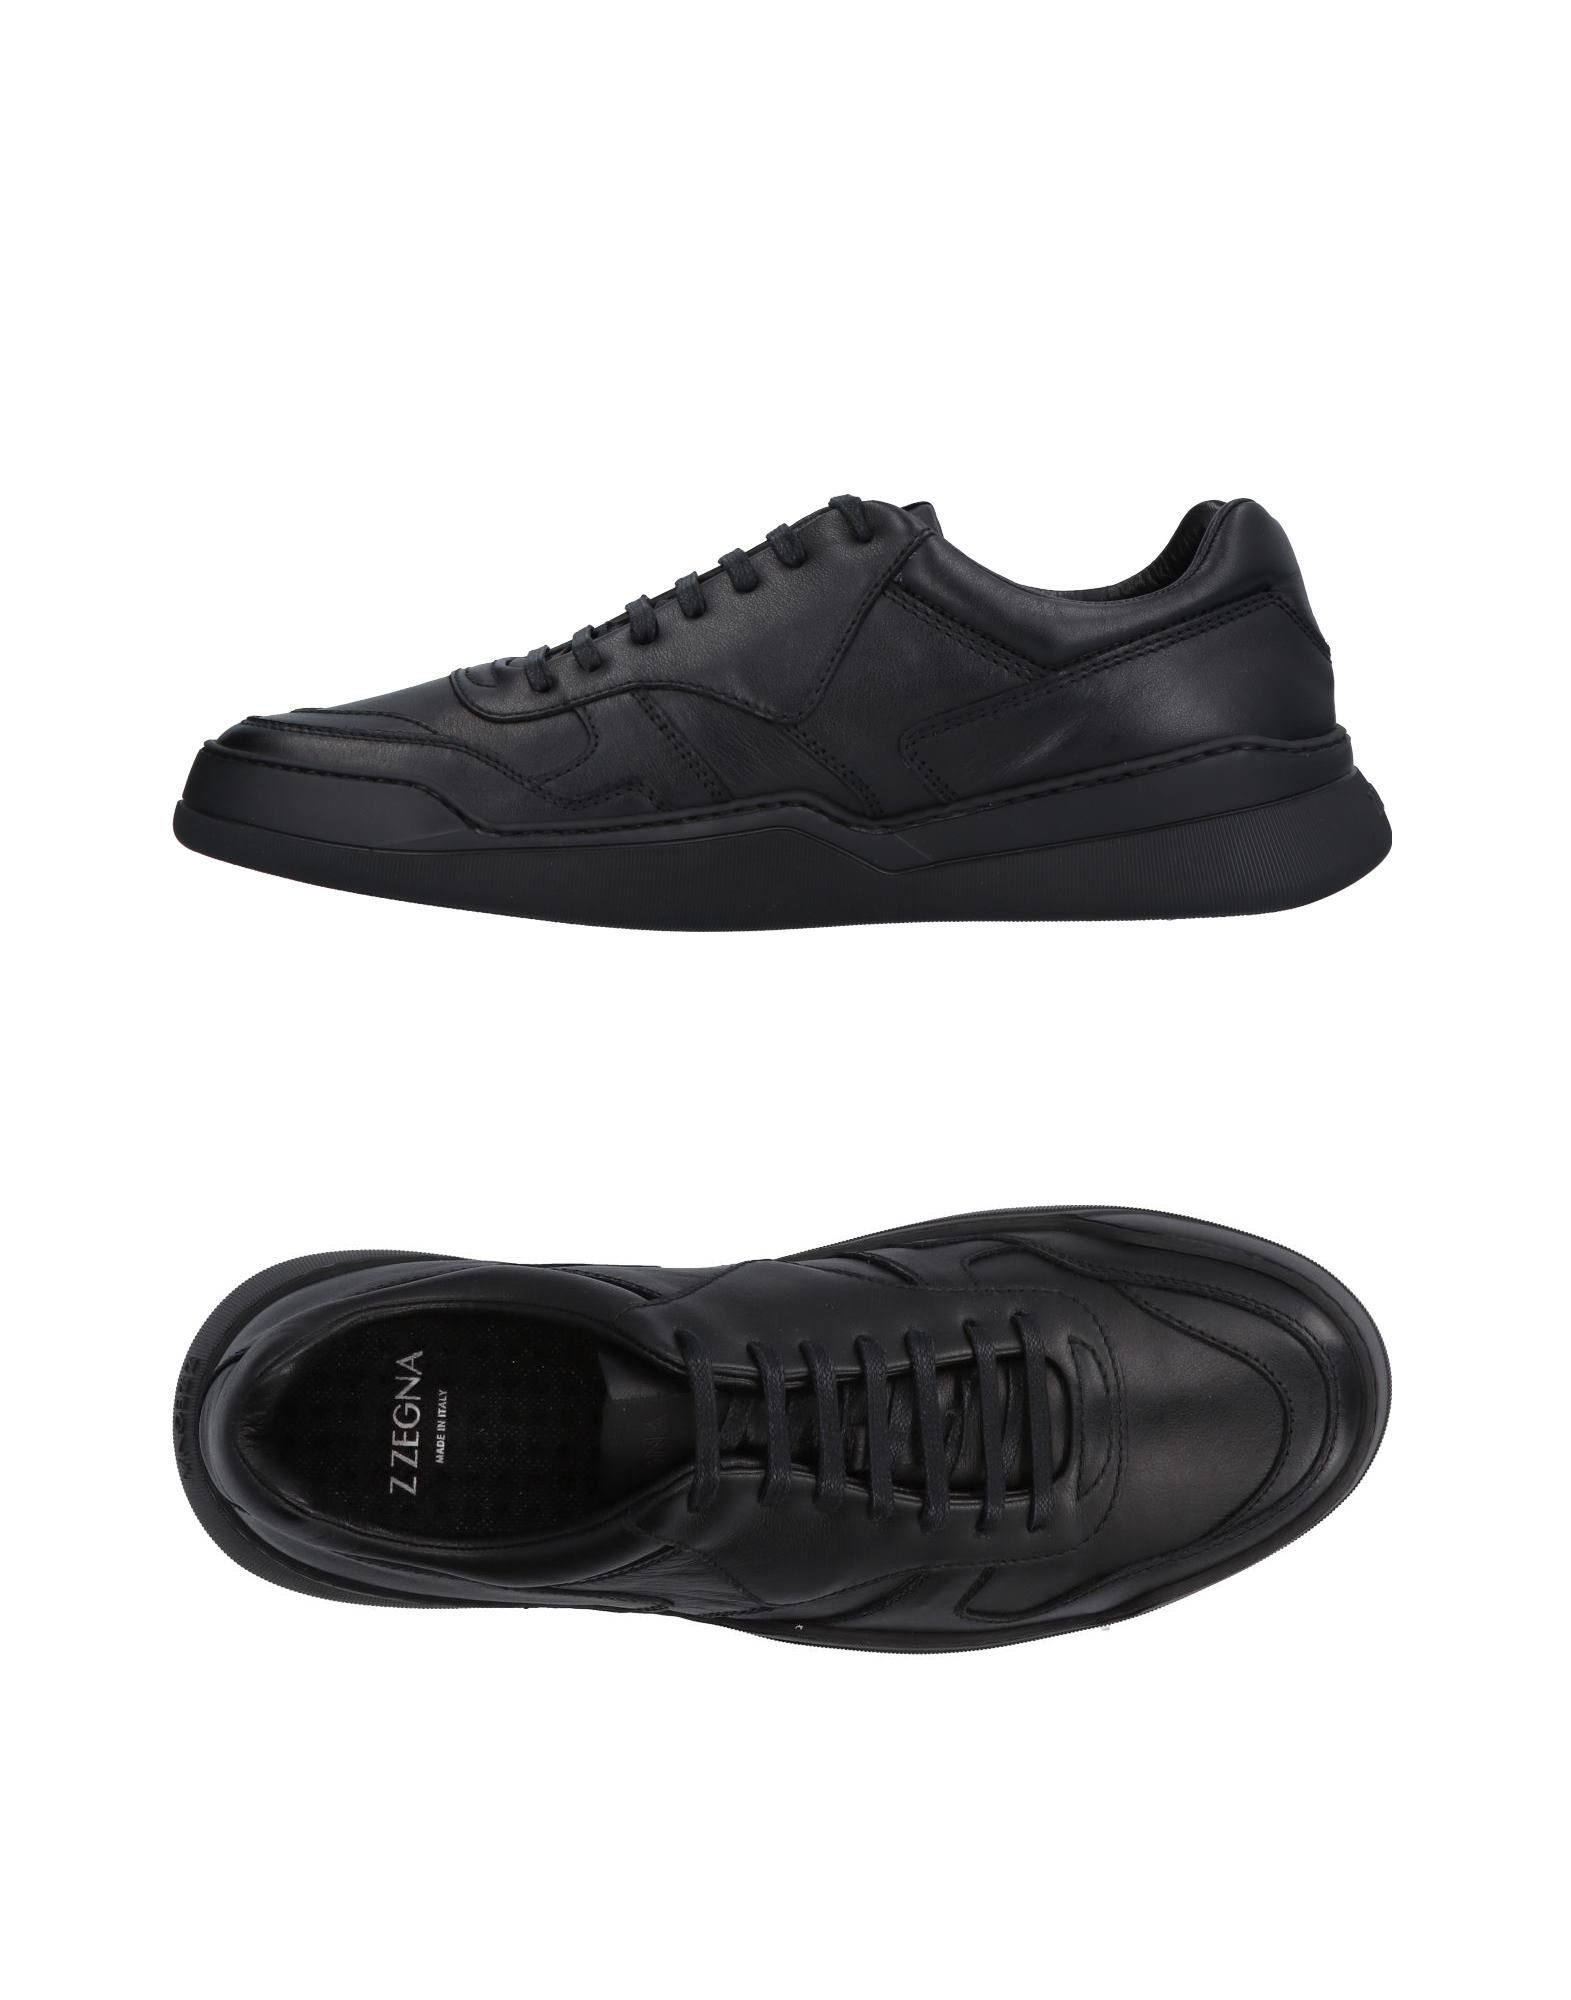 Zzegna Sneakers United - Men Zzegna Sneakers online on  United Sneakers Kingdom - 11487105WN 38a4f5